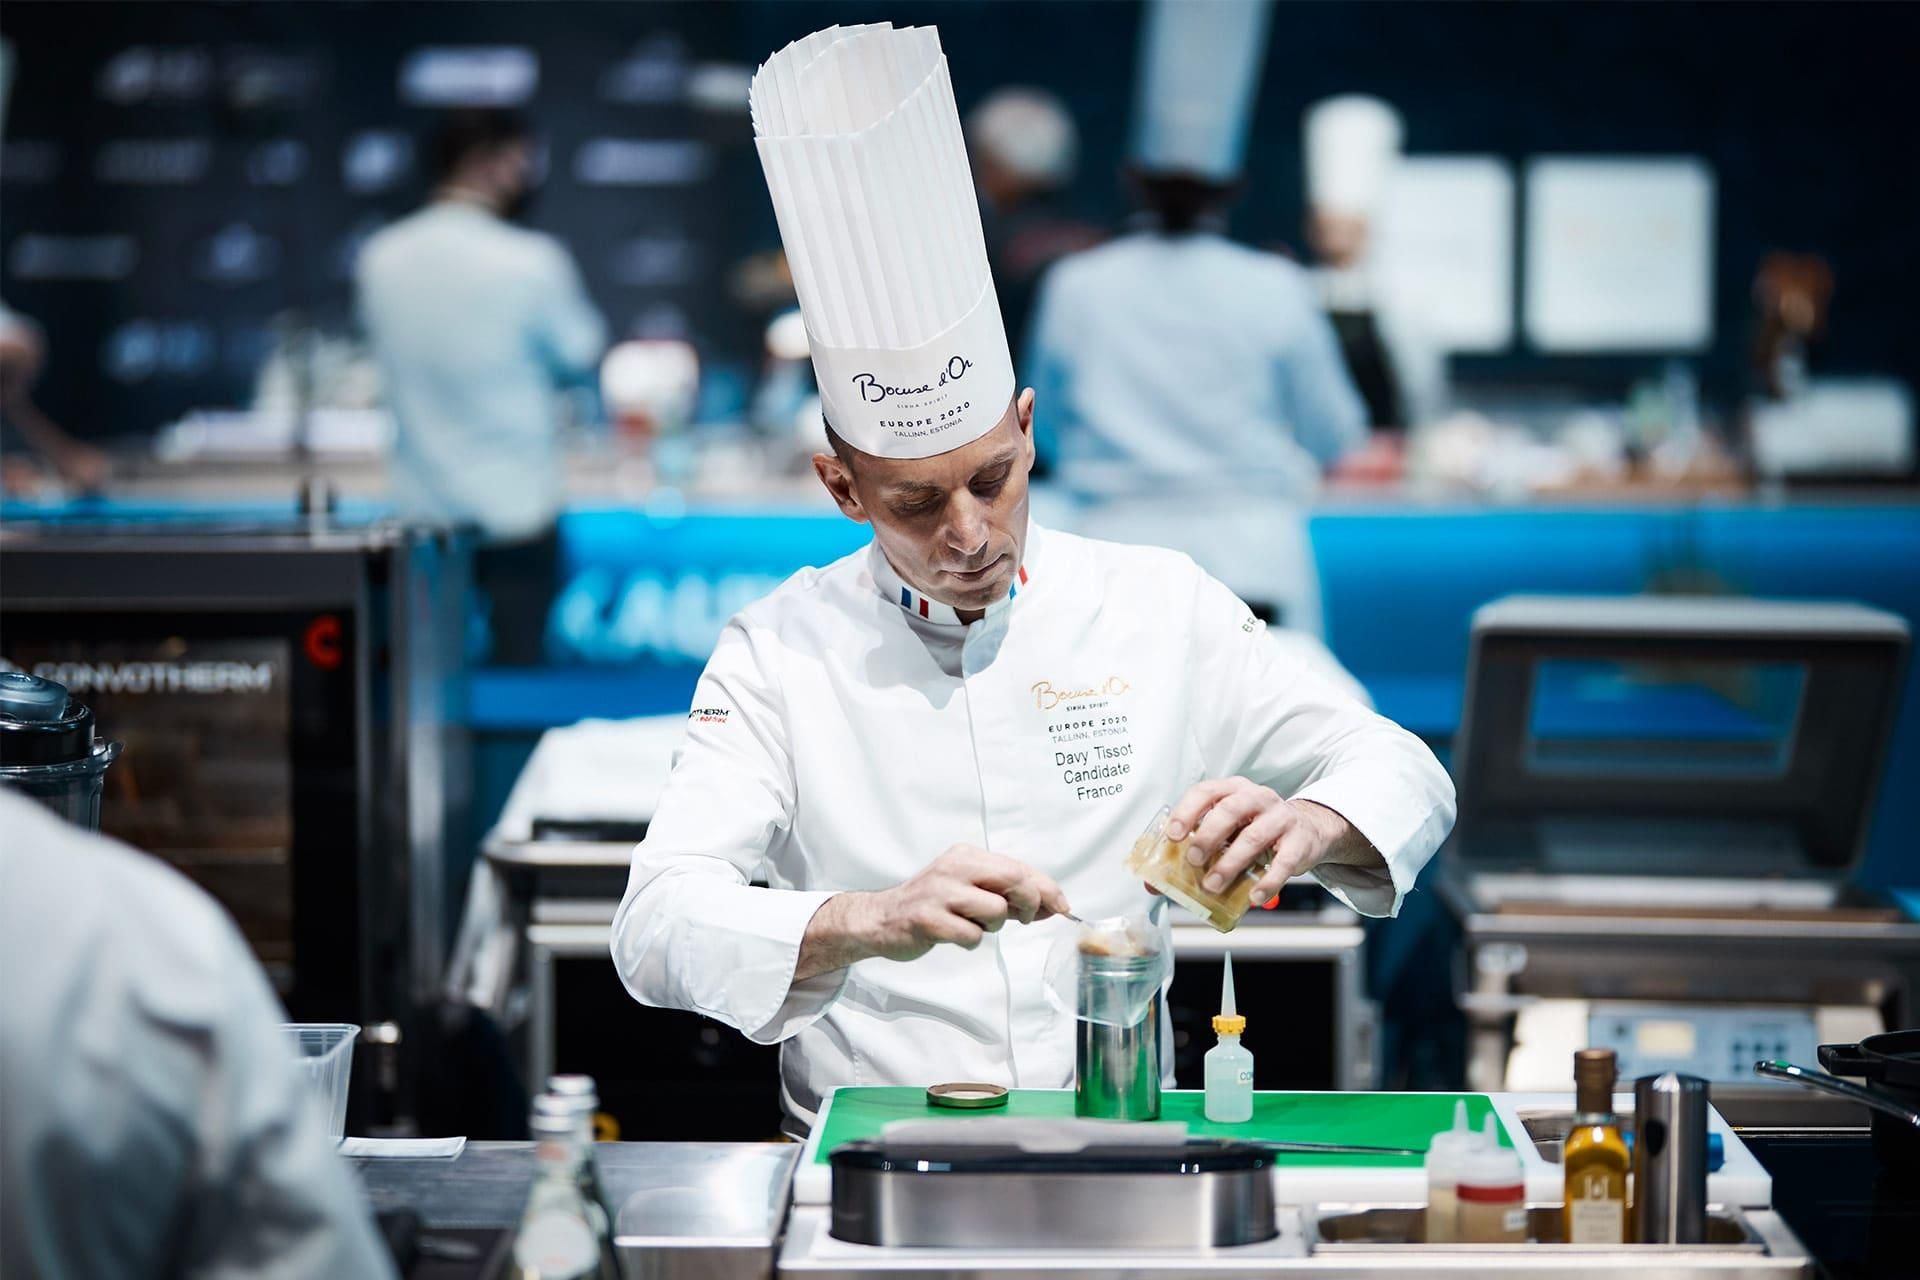 Davy Tissot from France during the Bocuse d'Or 2020 Europe